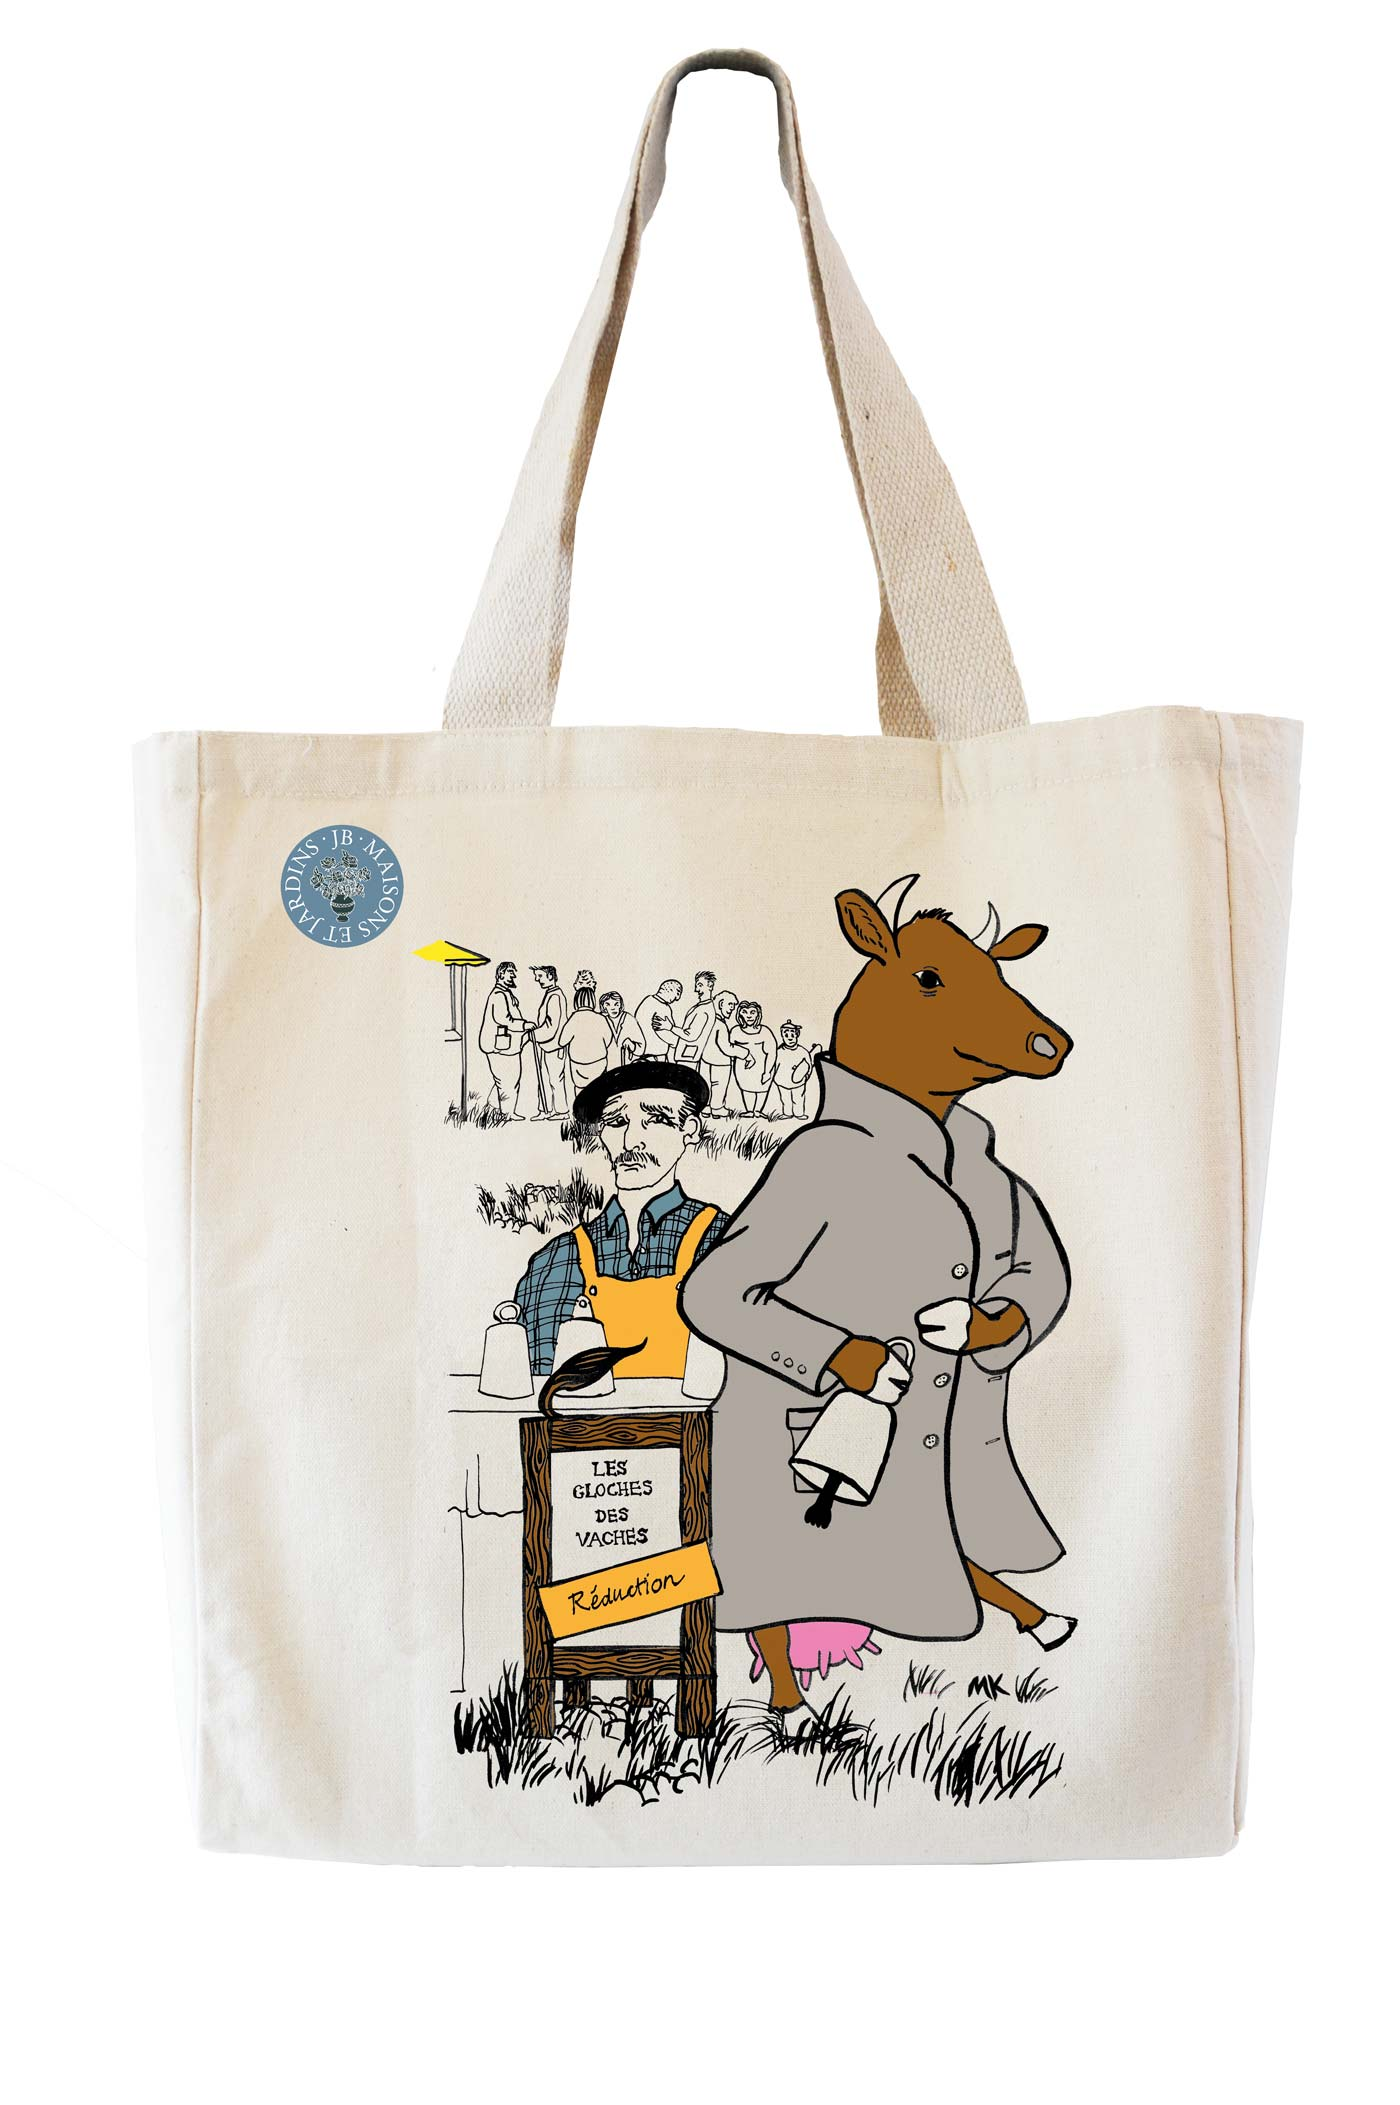 Illustration of a cow for a tote bag design